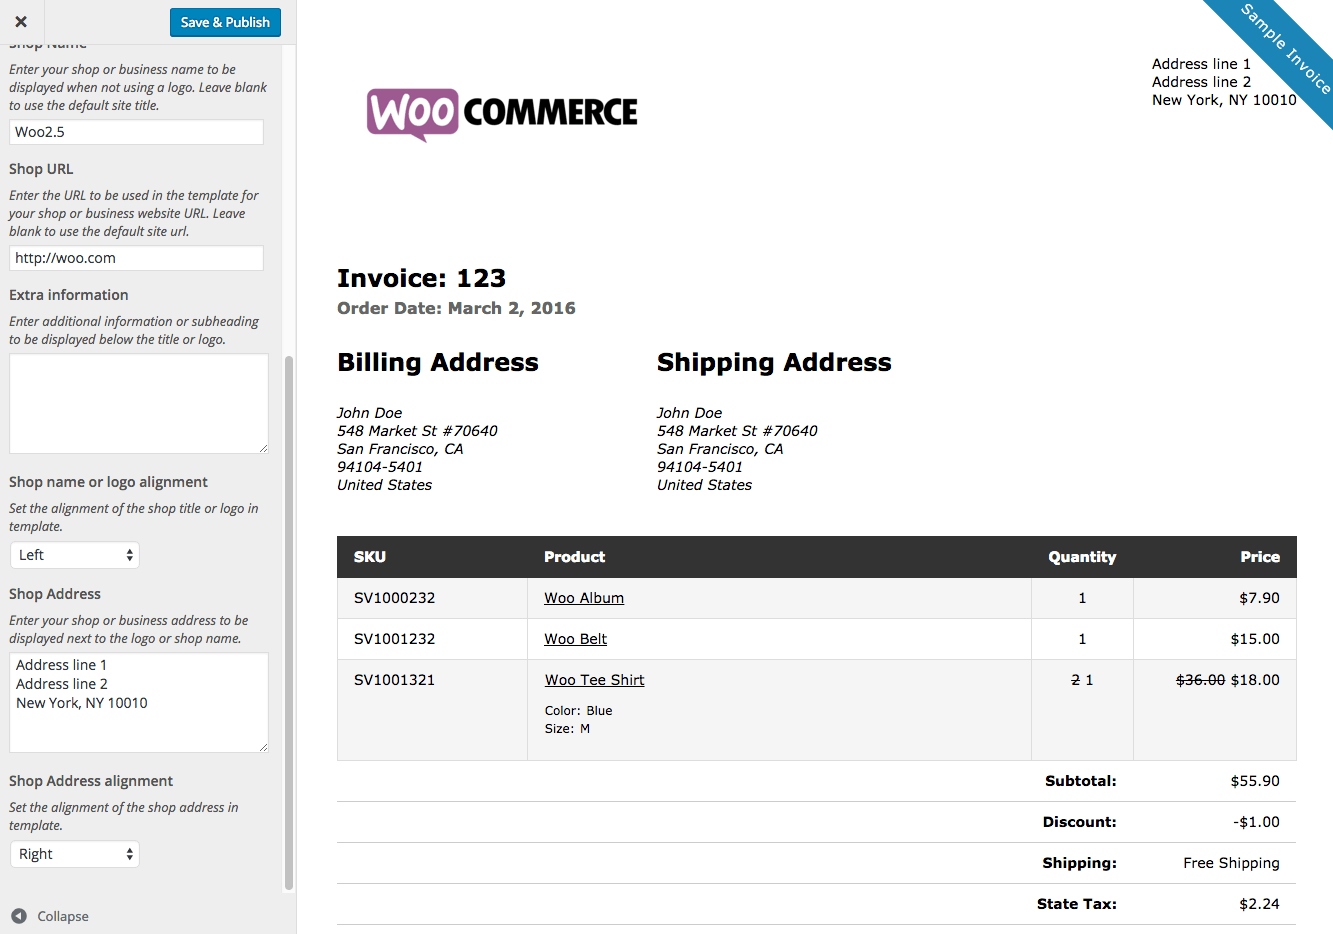 Occupyhistoryus  Nice Woocommerce Print Invoices Amp Packing Lists  Woocommerce Docs With Glamorous Woocommerce Print Invoices  Packing Lists Customizer With Enchanting New Truck Invoice Prices Also Download Excel Invoice Template In Addition Invoice Business And Invoice Print As Well As Quick Invoices Additionally Nissan Leaf Invoice Price From Docswoocommercecom With Occupyhistoryus  Glamorous Woocommerce Print Invoices Amp Packing Lists  Woocommerce Docs With Enchanting Woocommerce Print Invoices  Packing Lists Customizer And Nice New Truck Invoice Prices Also Download Excel Invoice Template In Addition Invoice Business From Docswoocommercecom